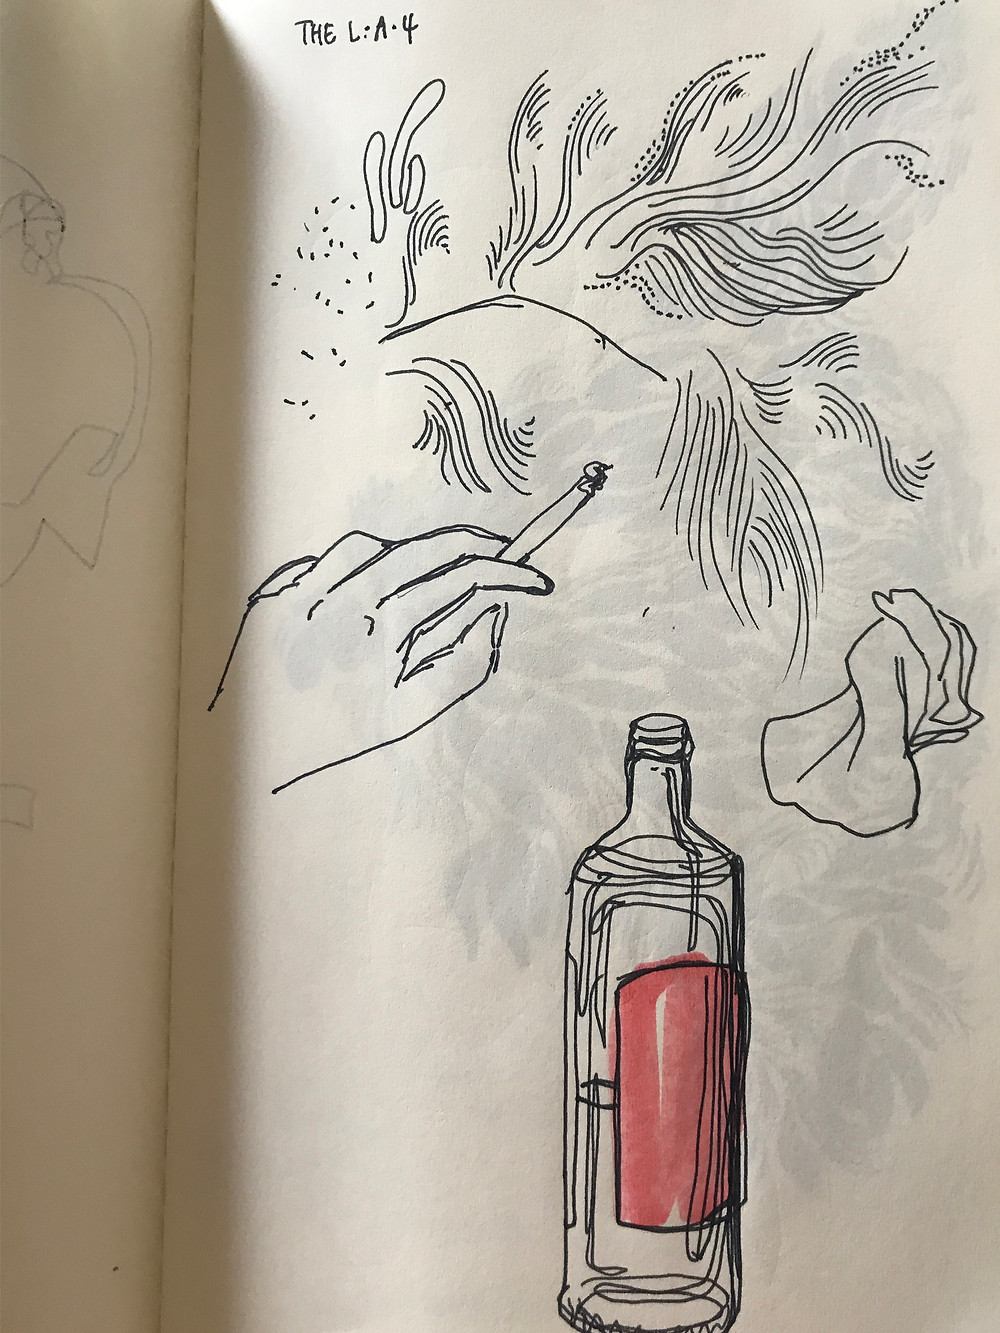 Sketchbook page: wavy lines, hand with cigarette, continuous line drawing of whiskey bottle